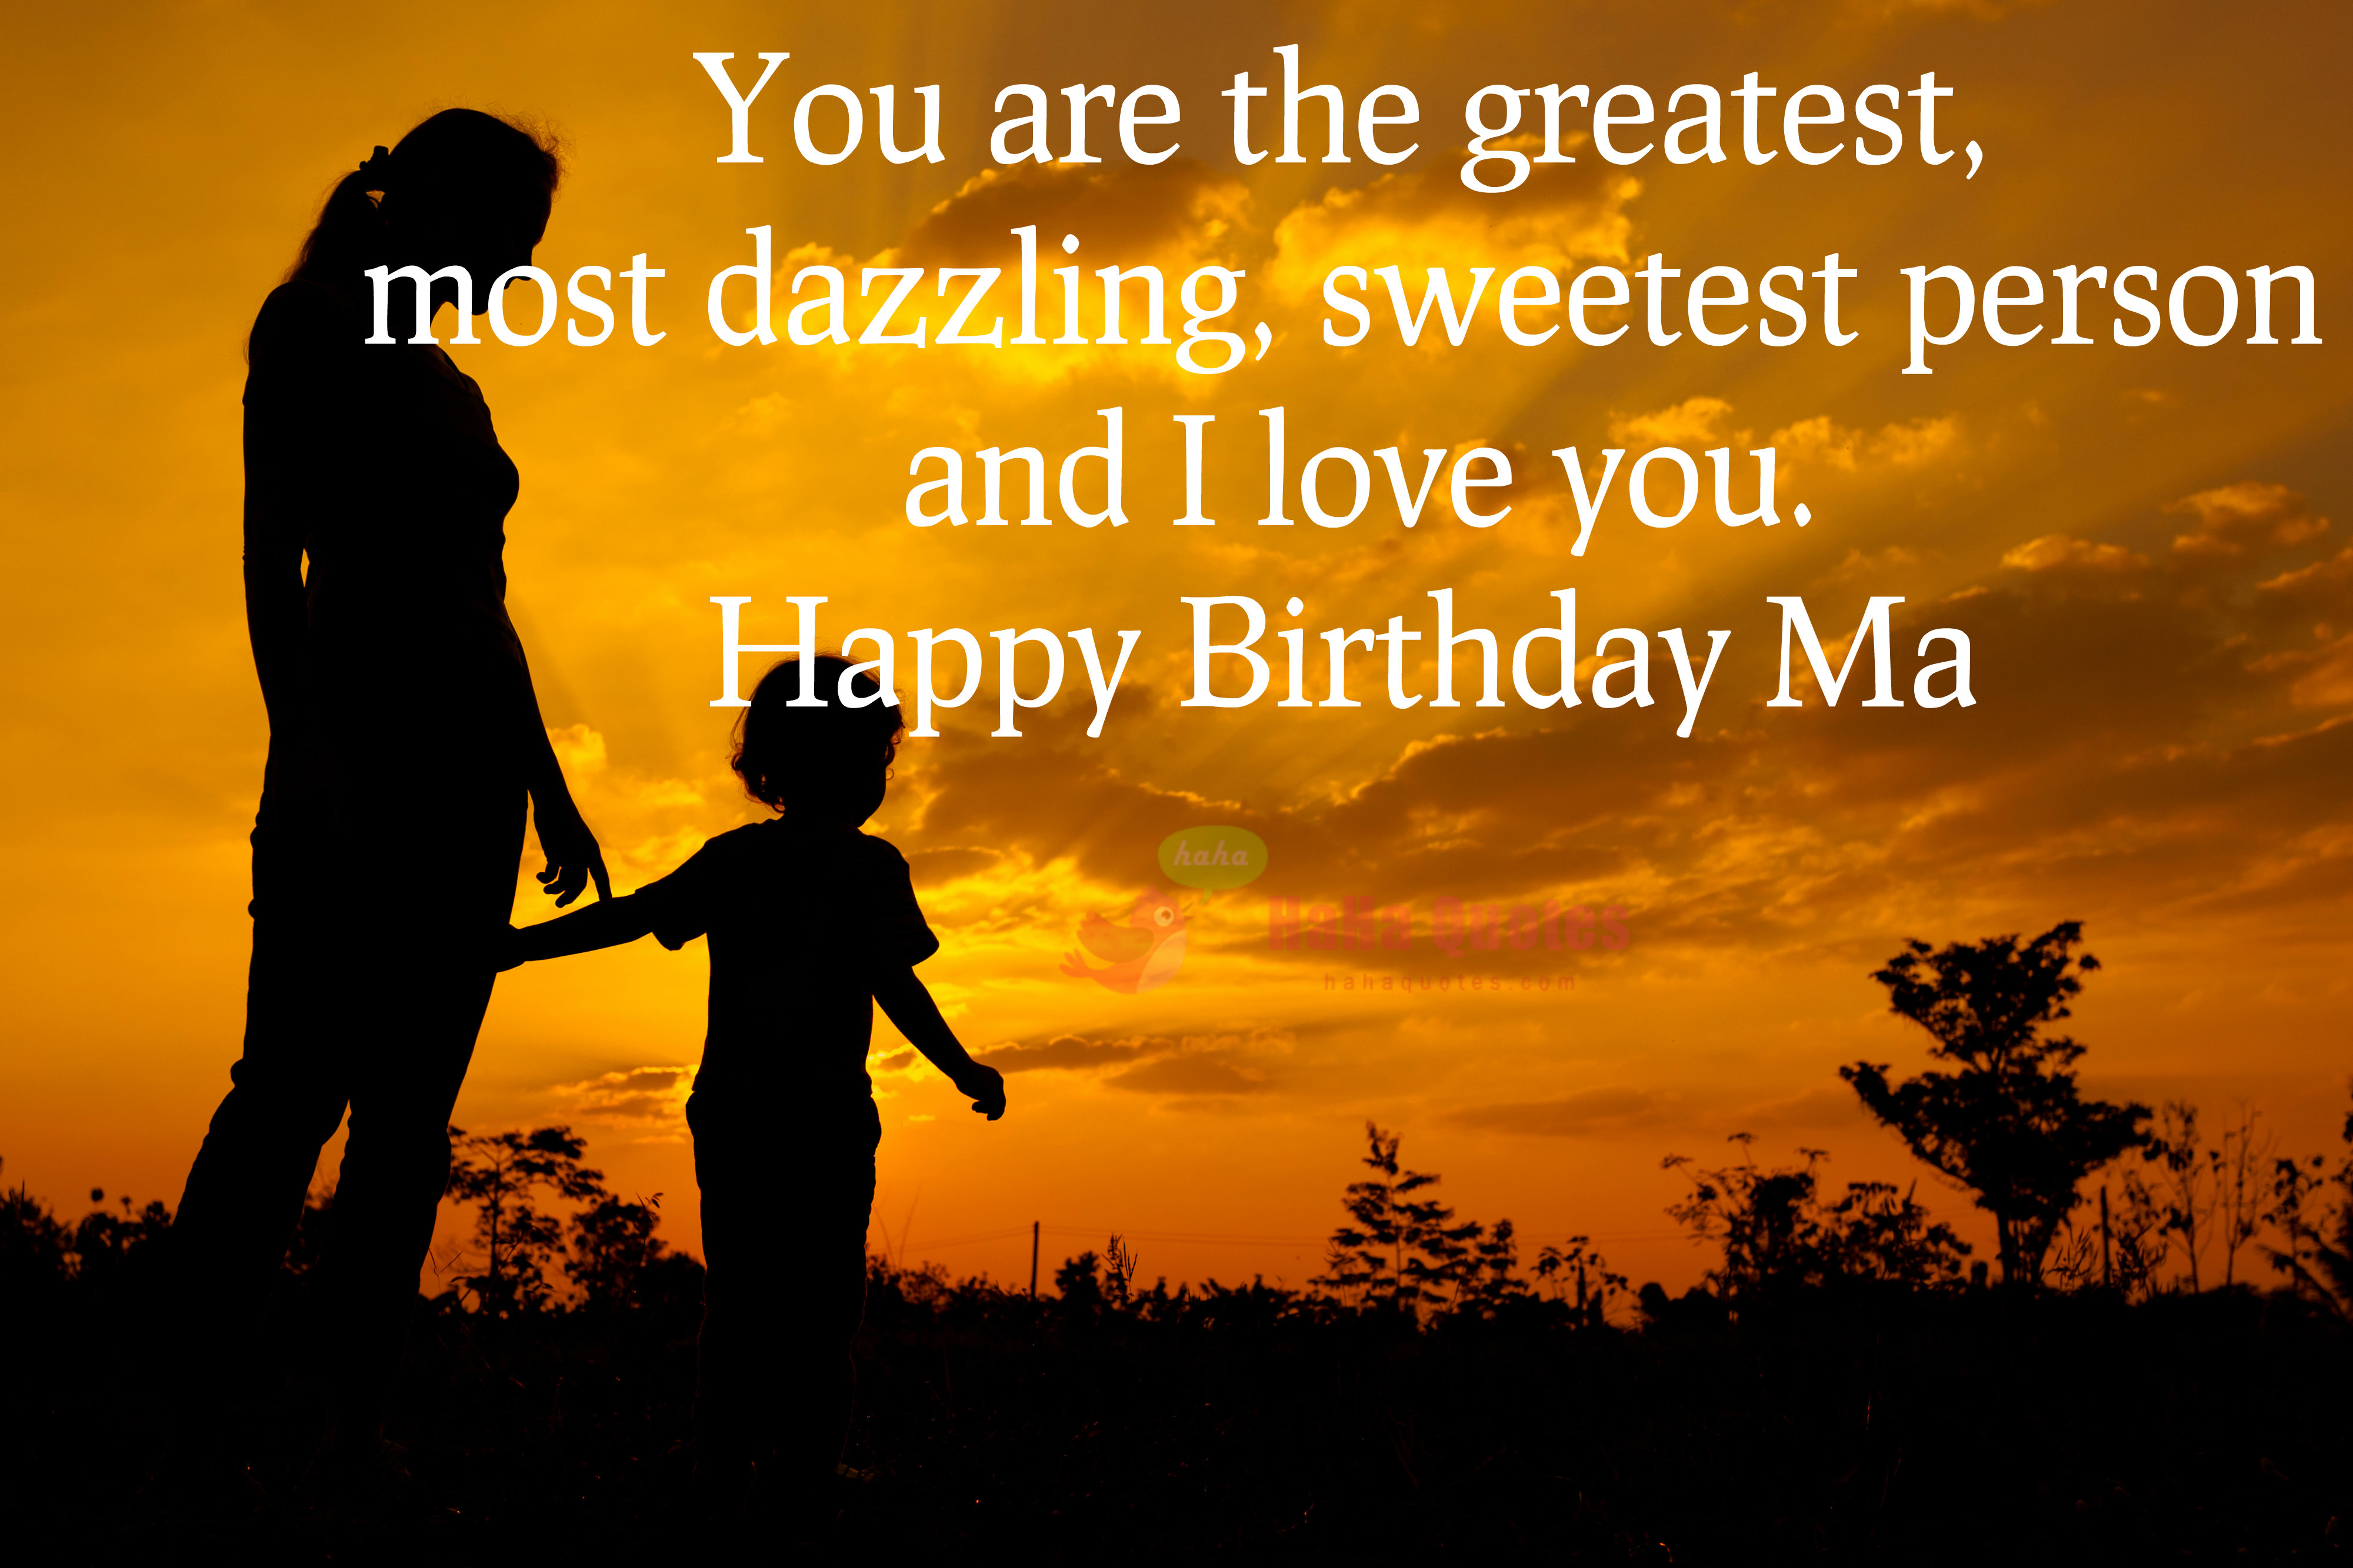 happy birthday message to mom from son ; Birthday-Wishes-for-Mom-from-Son